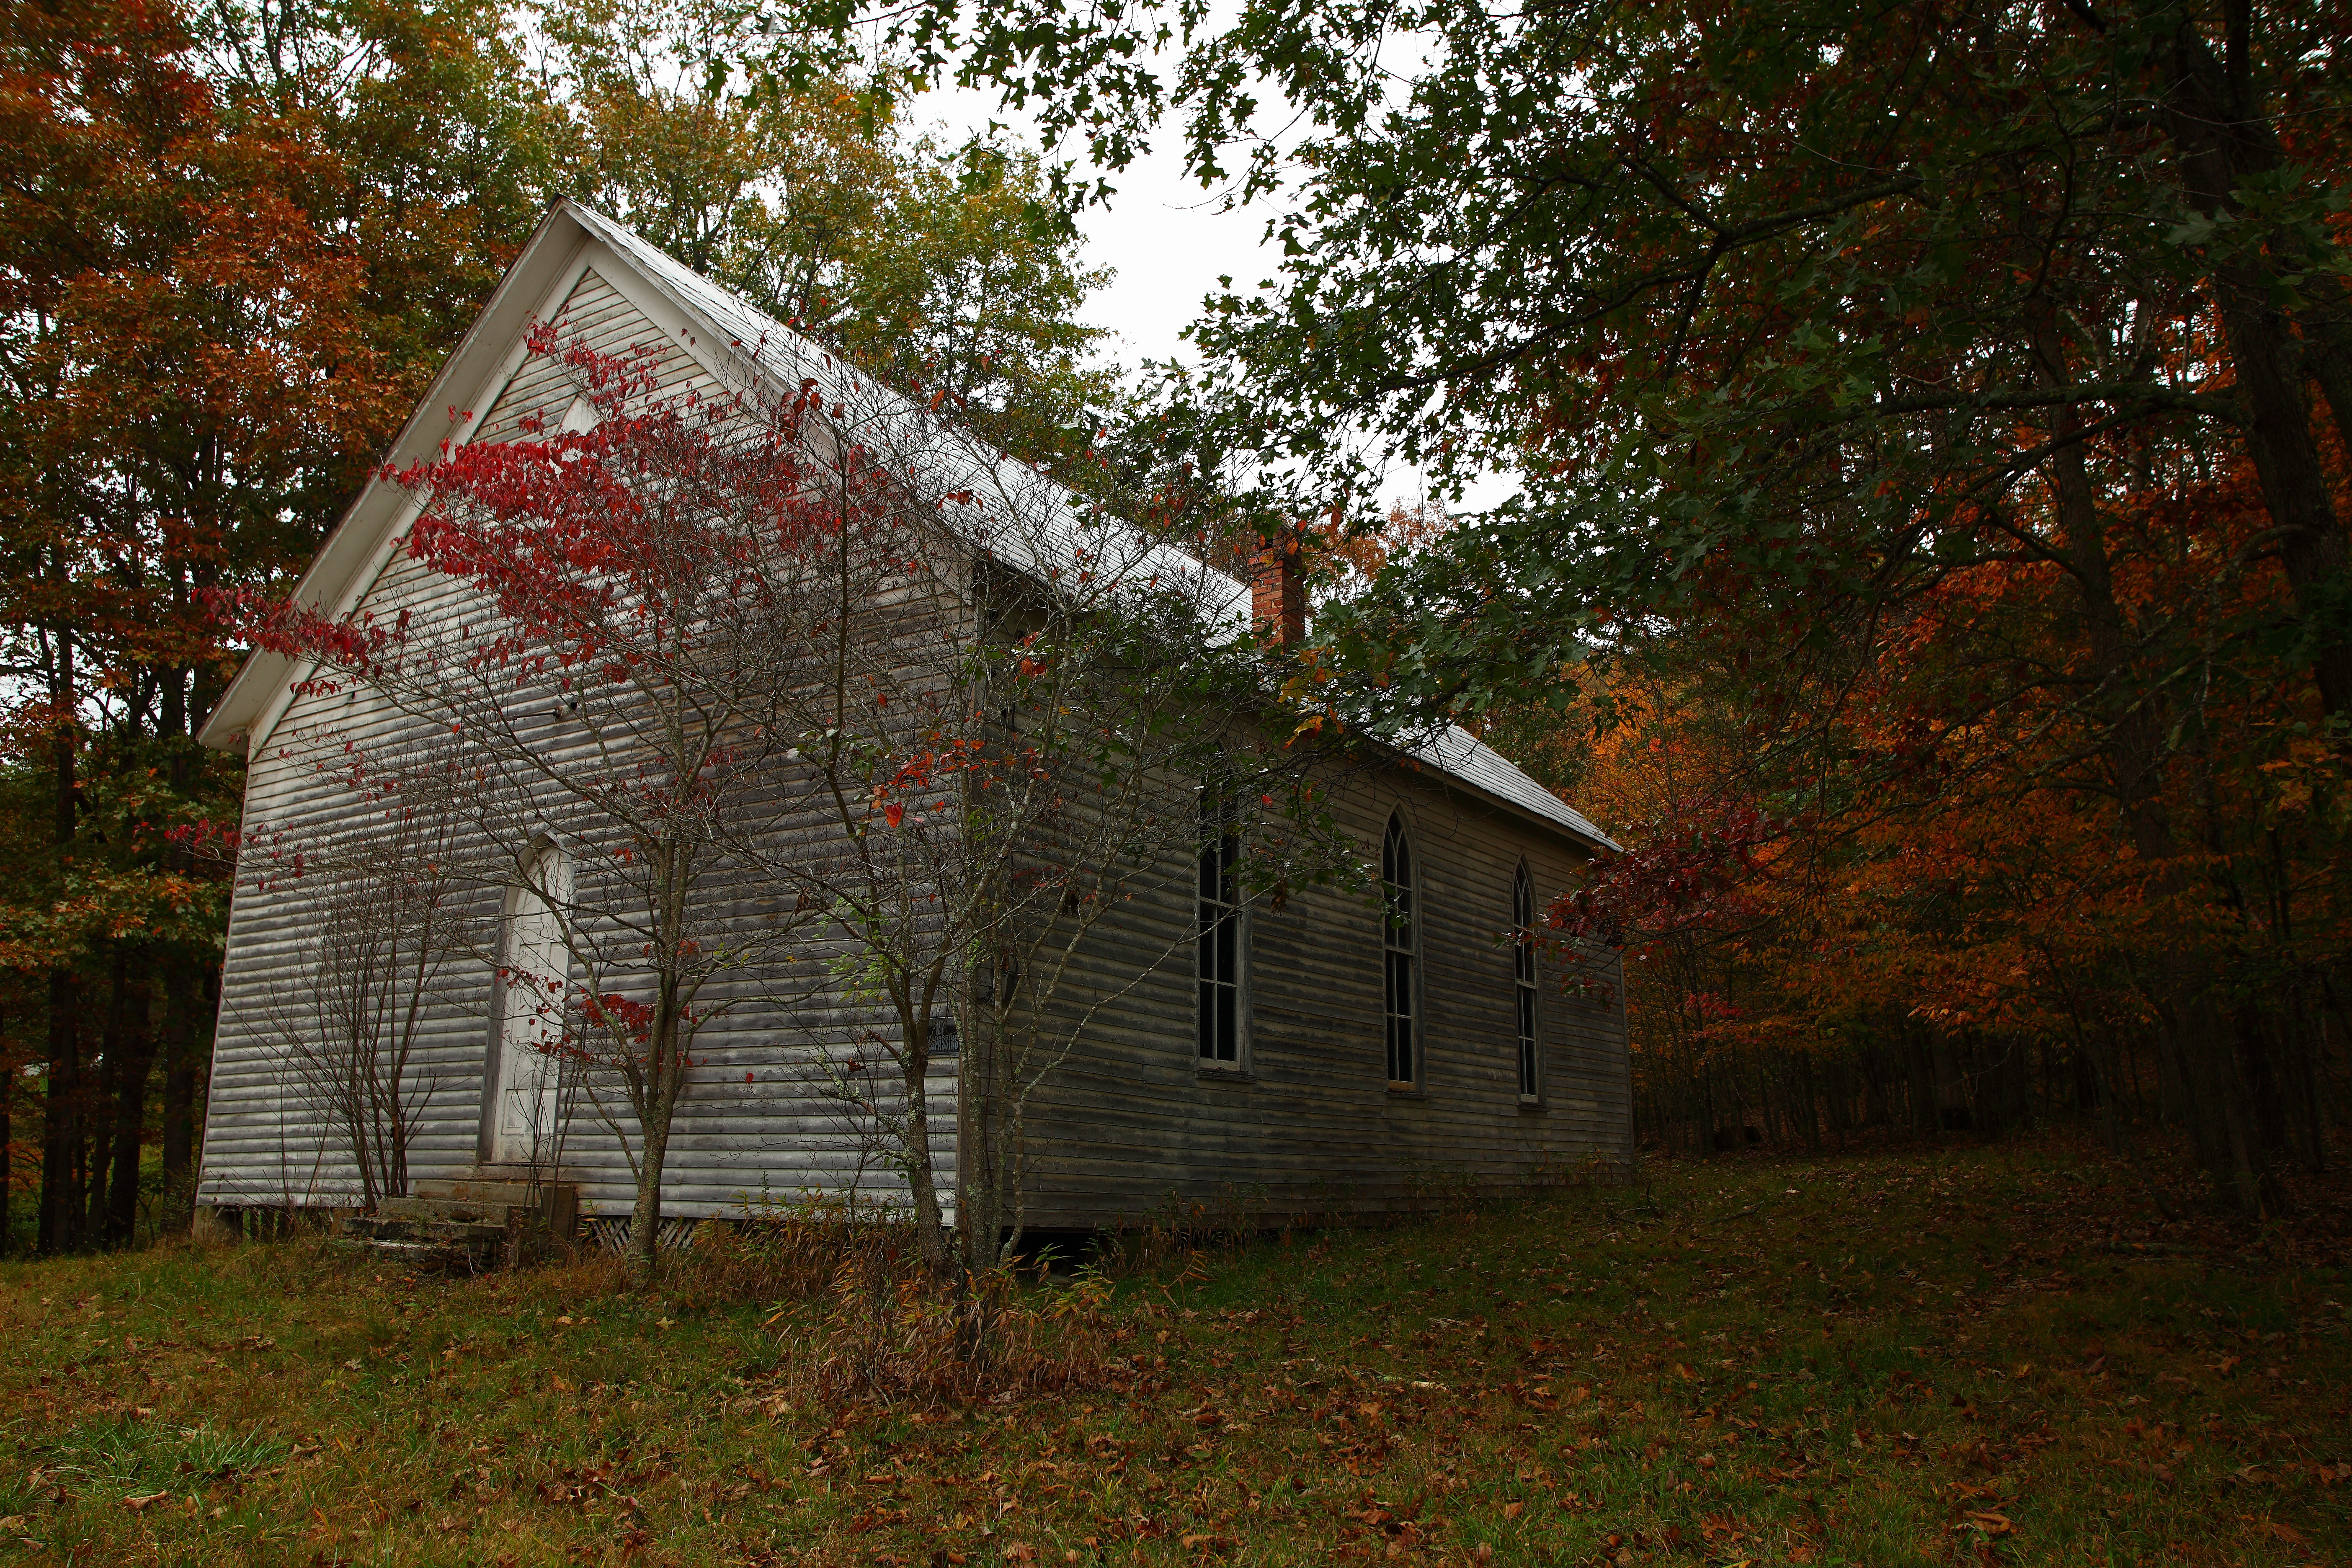 Https Www Forestwander Com 2009 10 Abandoned Old Country Church Autumn Wv